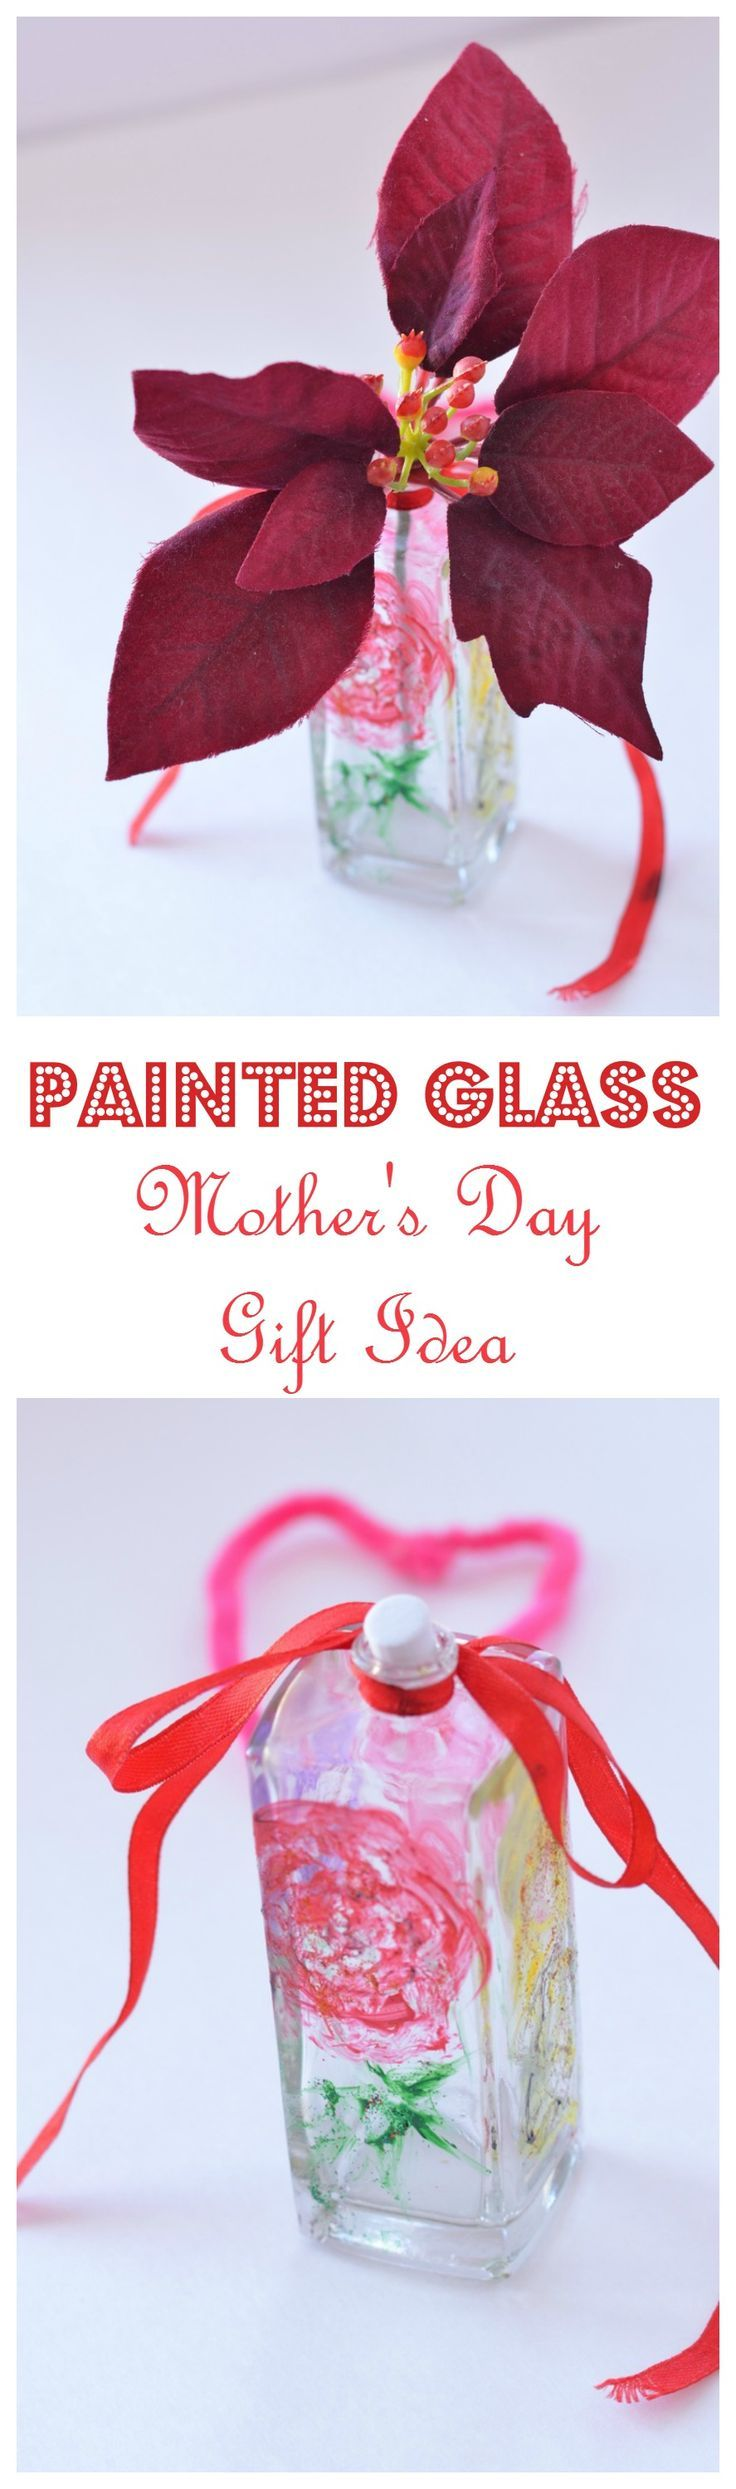 Need an easy homemade Mother's Day gift idea for you or